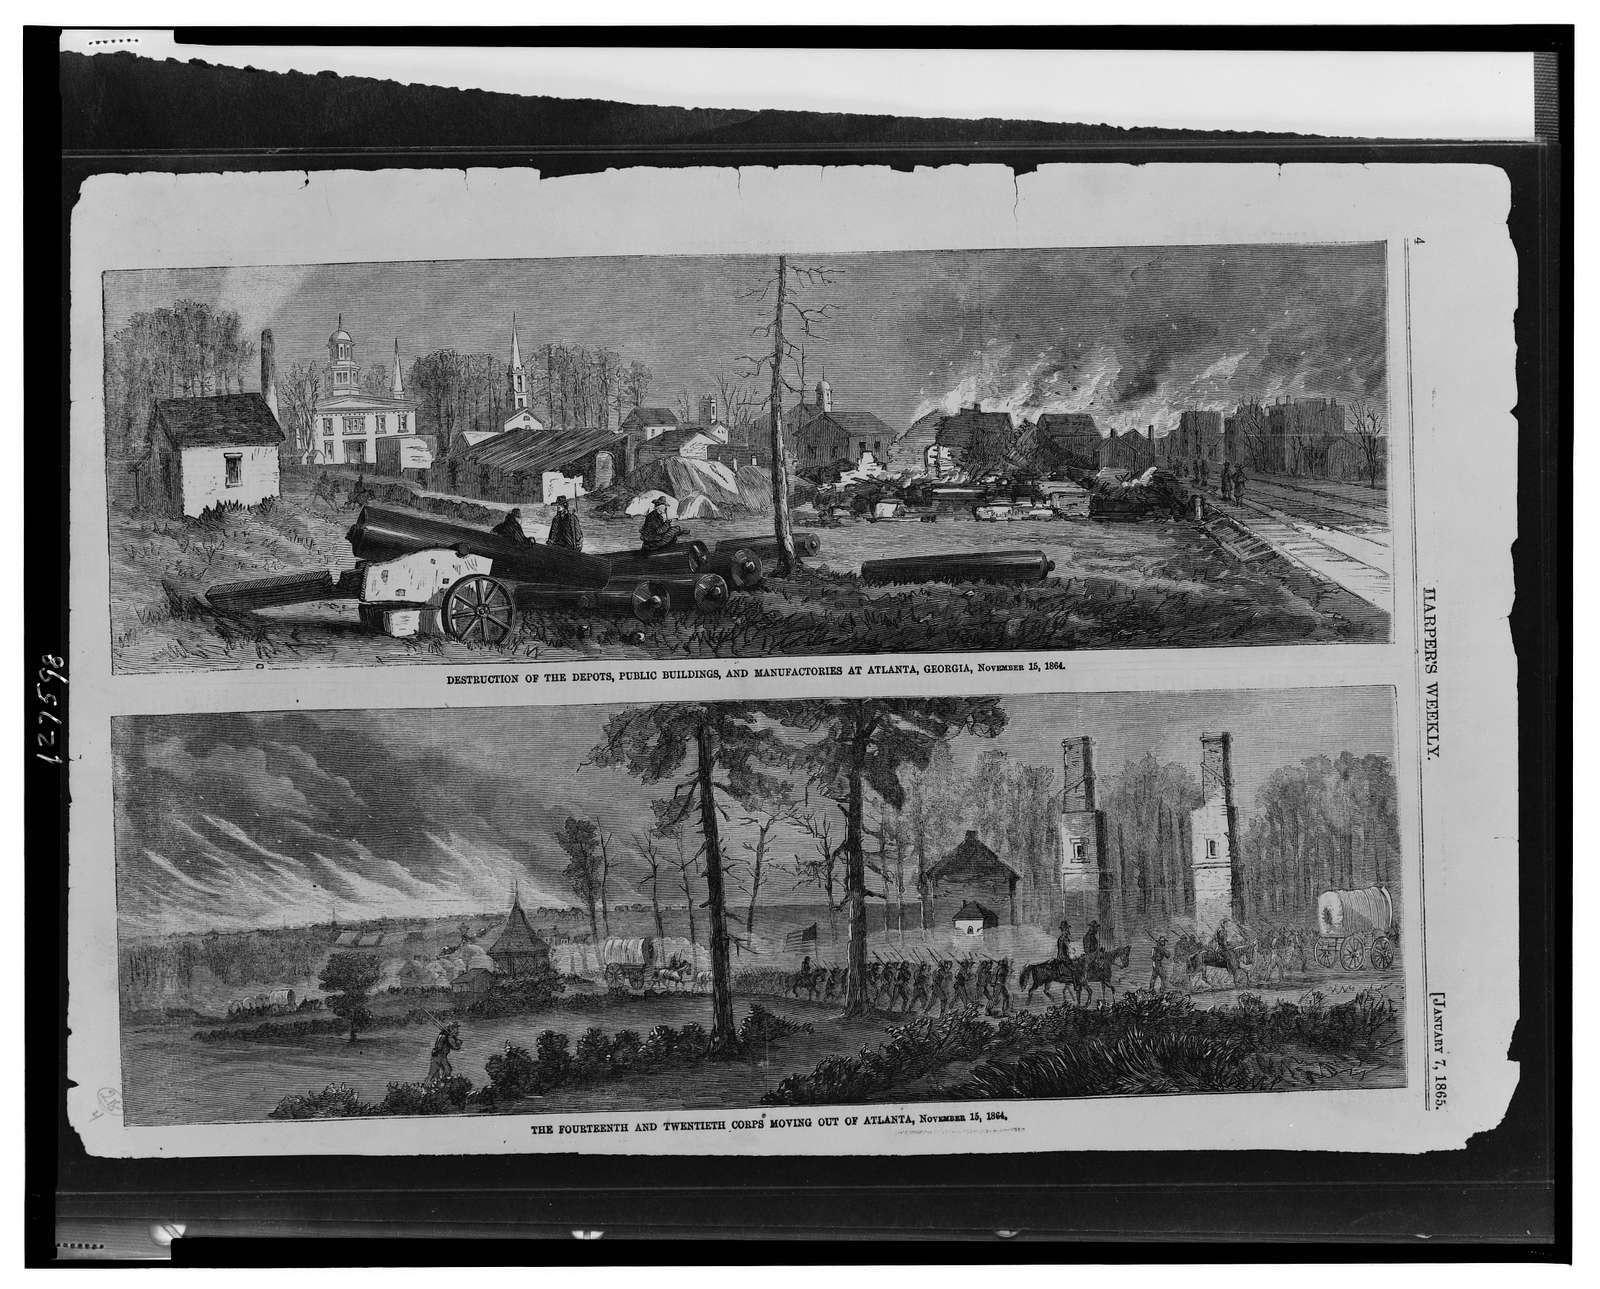 Destruction of the depots, public buildings, and manufactories at Atlanta, Georgia, November 15, 1864 The Fourteenth and Twentieth Corps moving out of Atlanta, November 15, 1864.